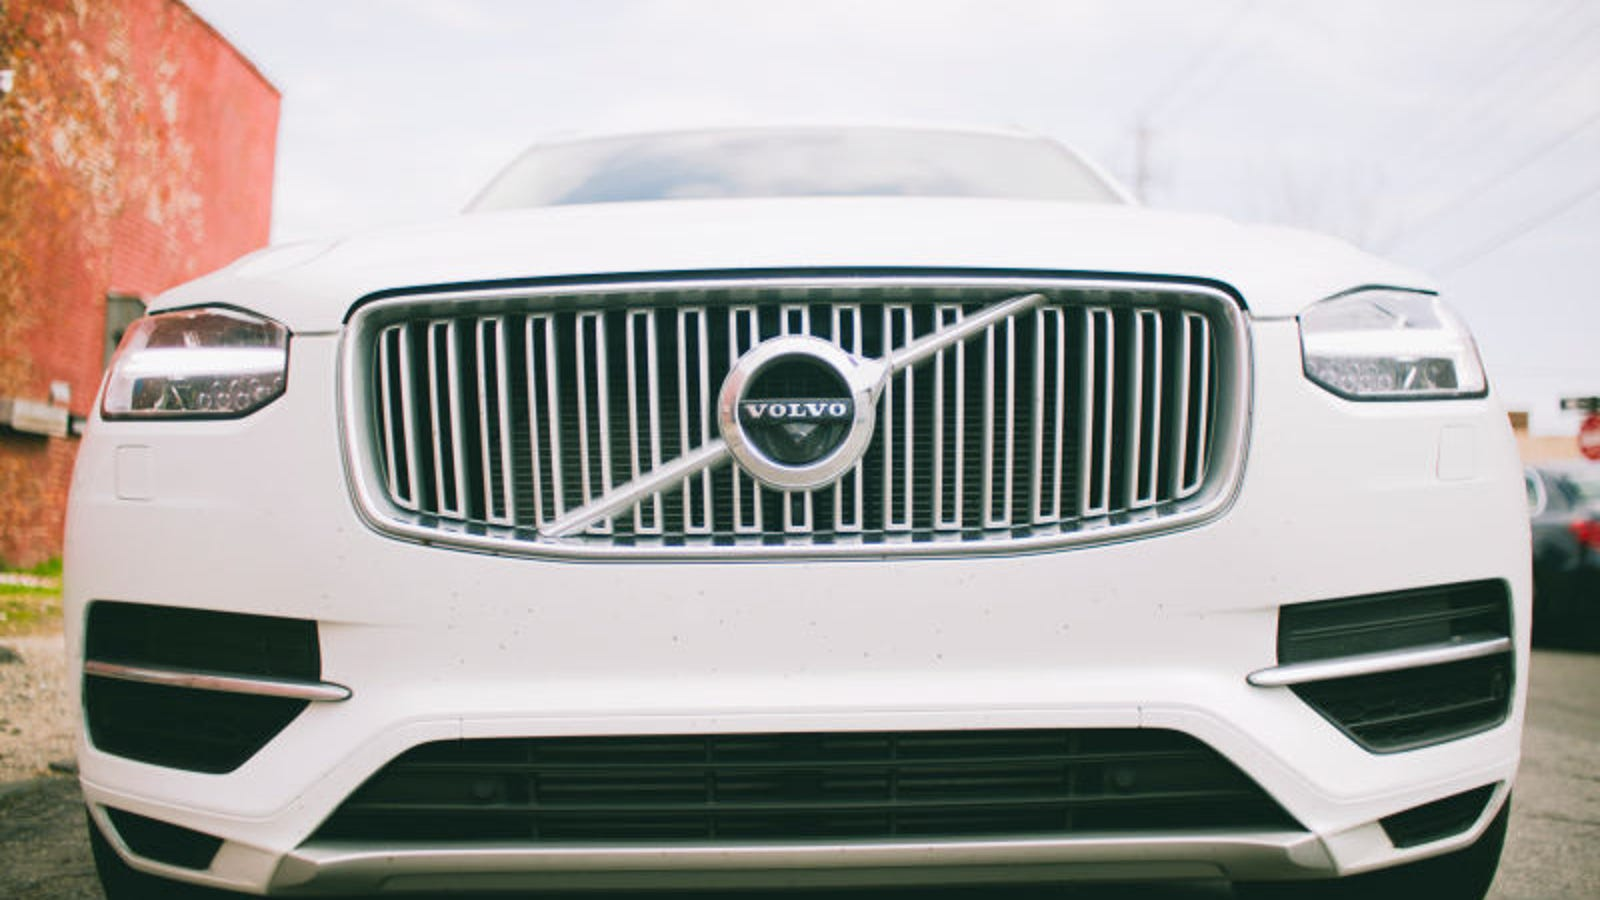 Of Course Volvo's 'Red Key' Only Makes The Car Safer